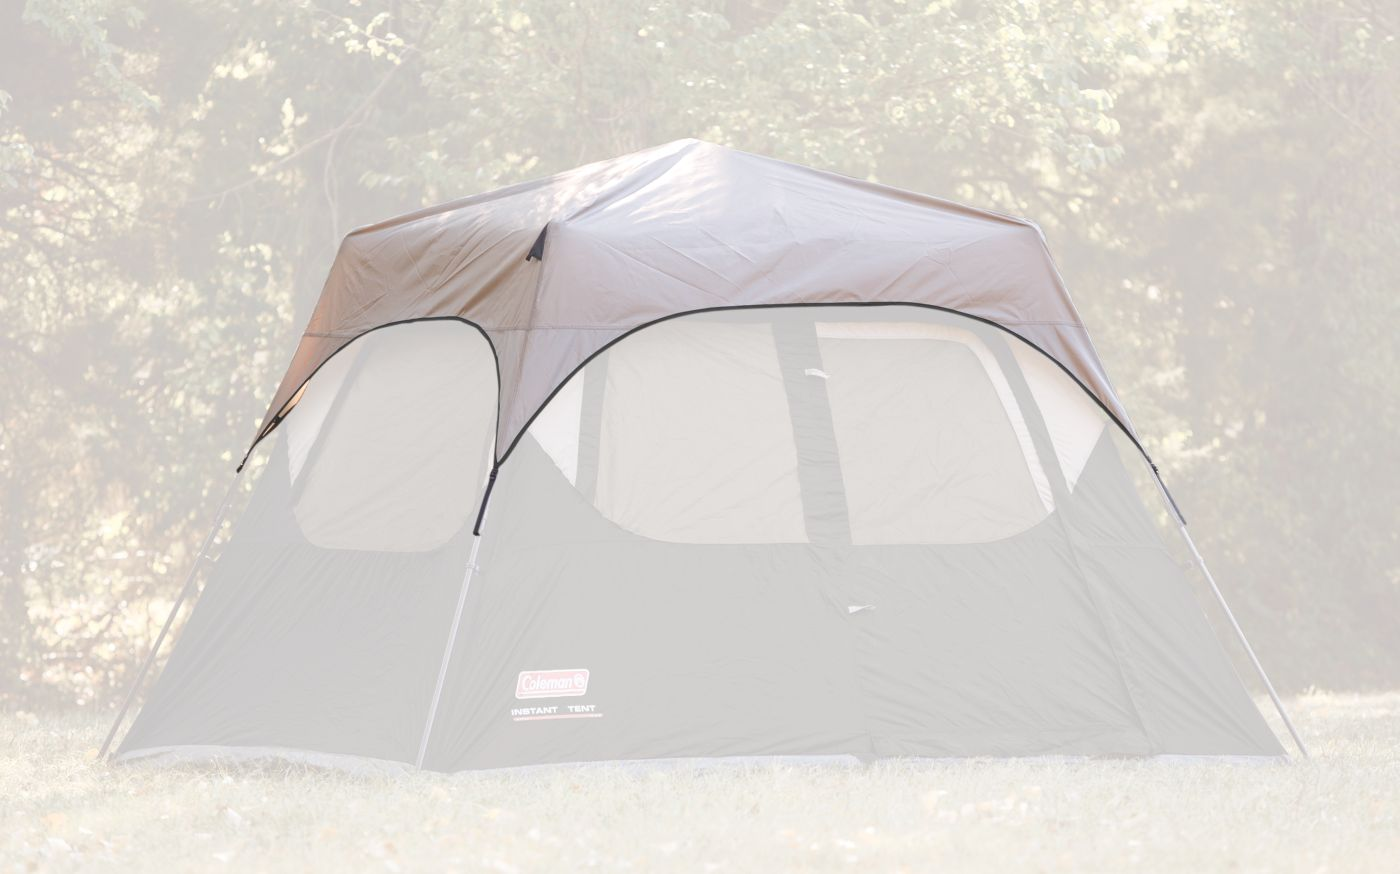 4-Person Instant Tent Rainfly Accessory image 2 ...  sc 1 st  Coleman & 4-Person Instant Tent Rainfly Accessory | Coleman